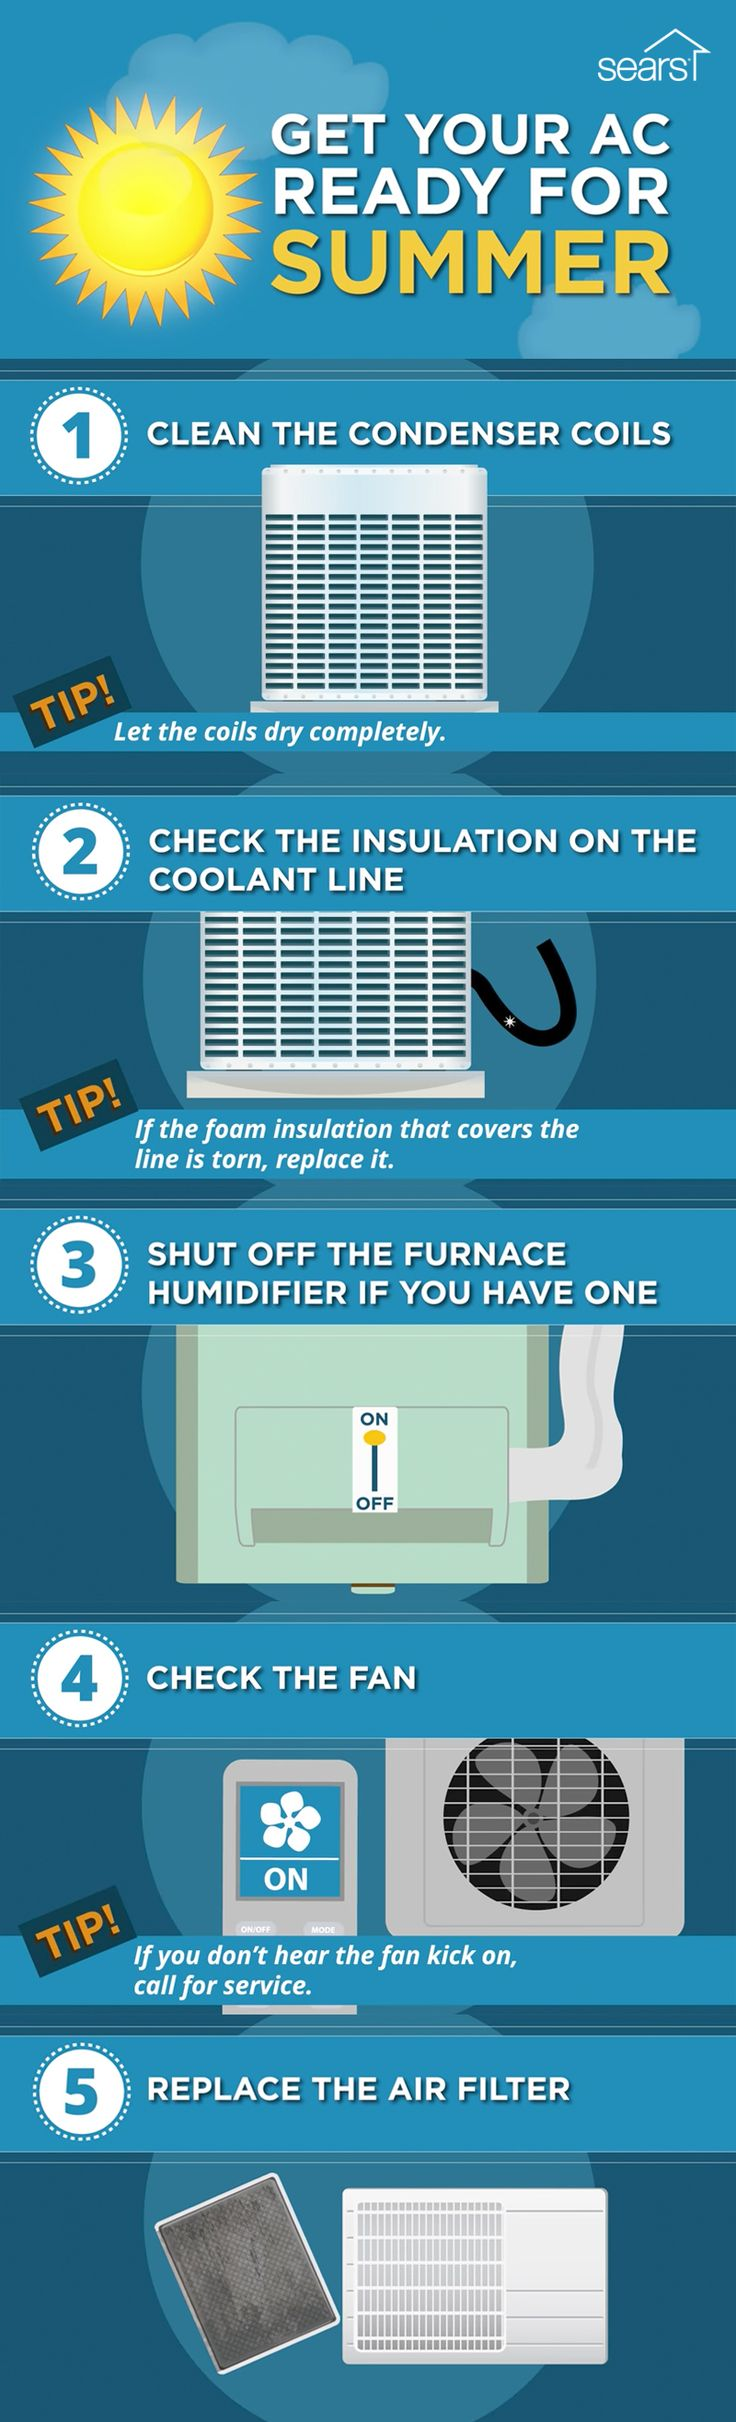 Will your AC make it through the summer? This handy HVAC maintenance inspection checklist can help. Clean the condenser coil. Check the insulation on the coolant line. Shut off the furnace humidifier if you have one. Check the fan. And replace the air filter. Don't forget to schedule an appointment for any needed AC maintenance or repairs before summer heats up. Visit the Sears Home Improvement blog for more air conditioning maintenance tips.